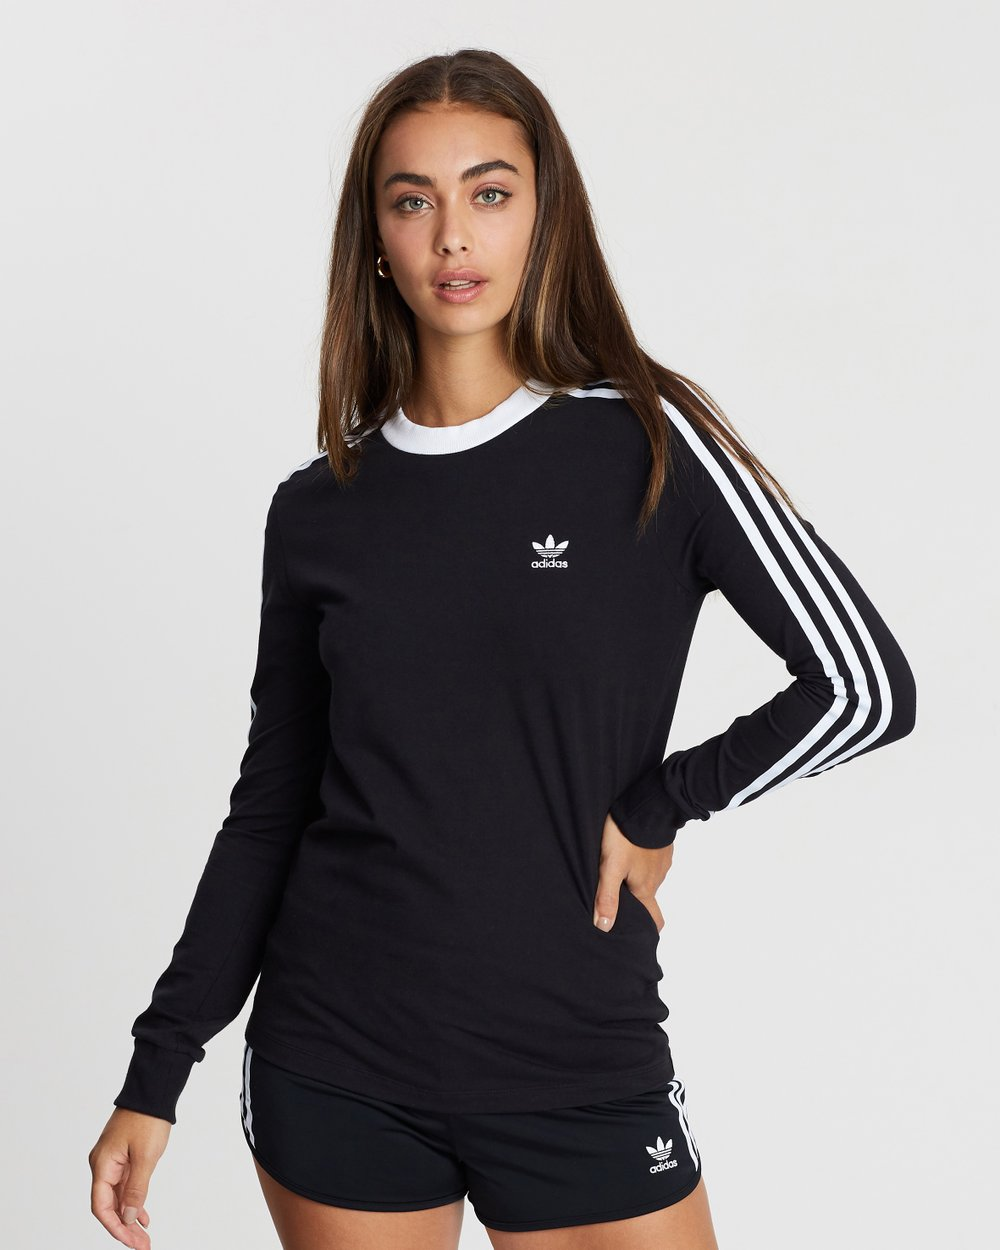 3095ce540a 3-Stripes Long Sleeve Tee by adidas Originals Online | THE ICONIC |  Australia